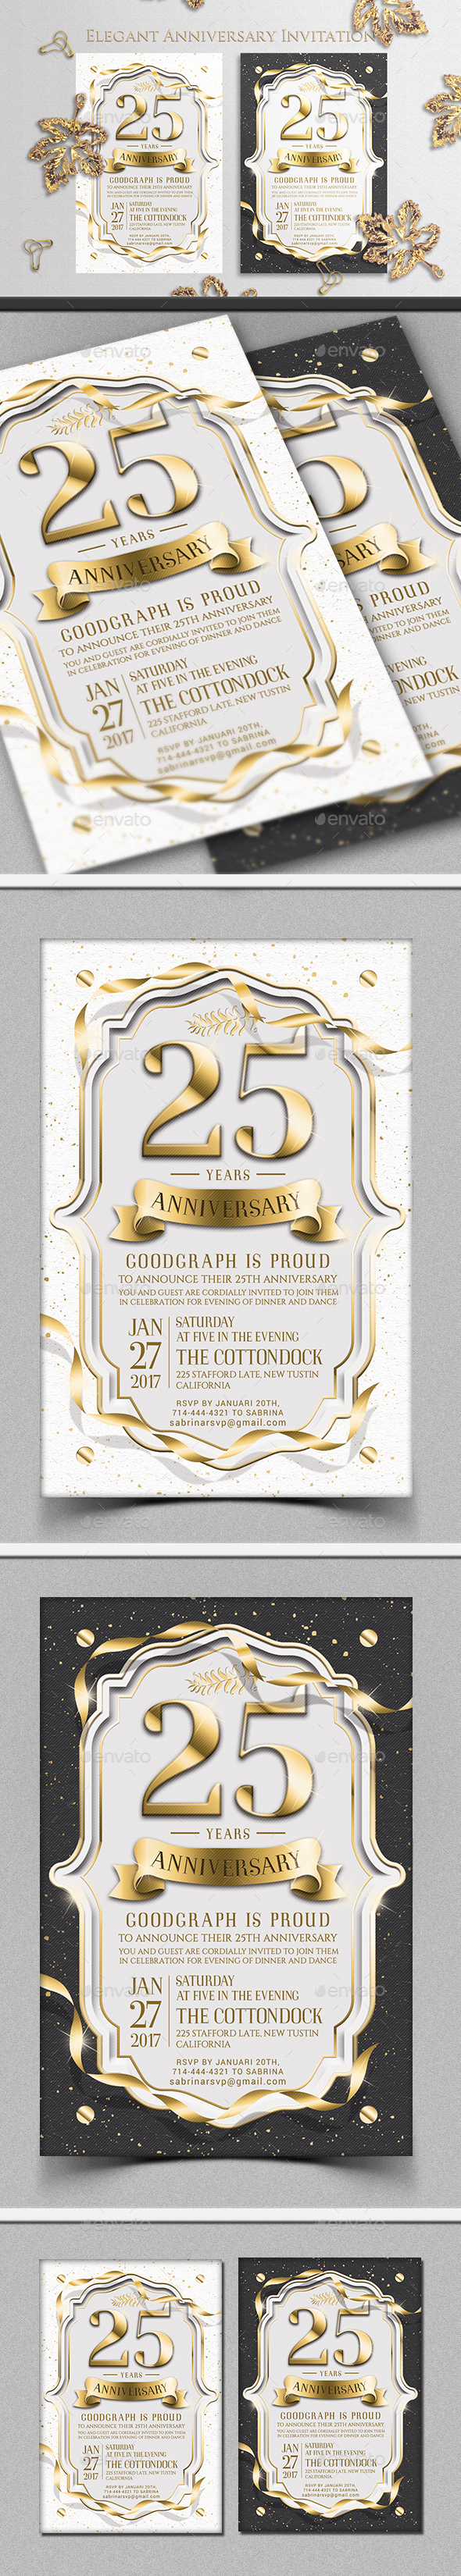 Anniversary Invitation - Invitations Cards & Invites